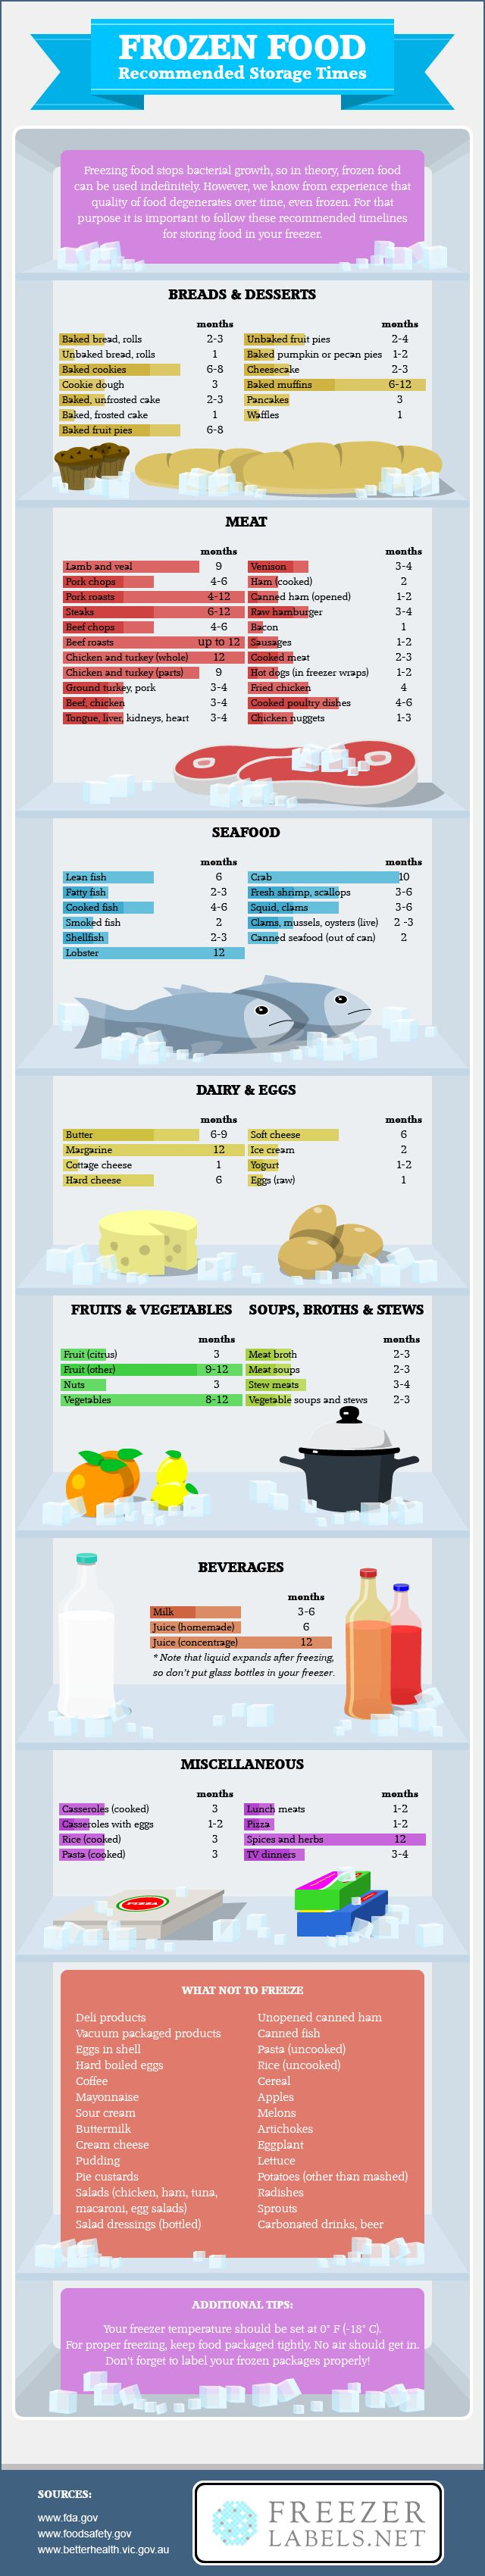 Buying food in bulk or making meals ahead of time are great ways for busy families to save money and time spent in the kitchen. And for most, a trip to the store consists of purchasing some type of frozen food. We all know that even frozen foods have a